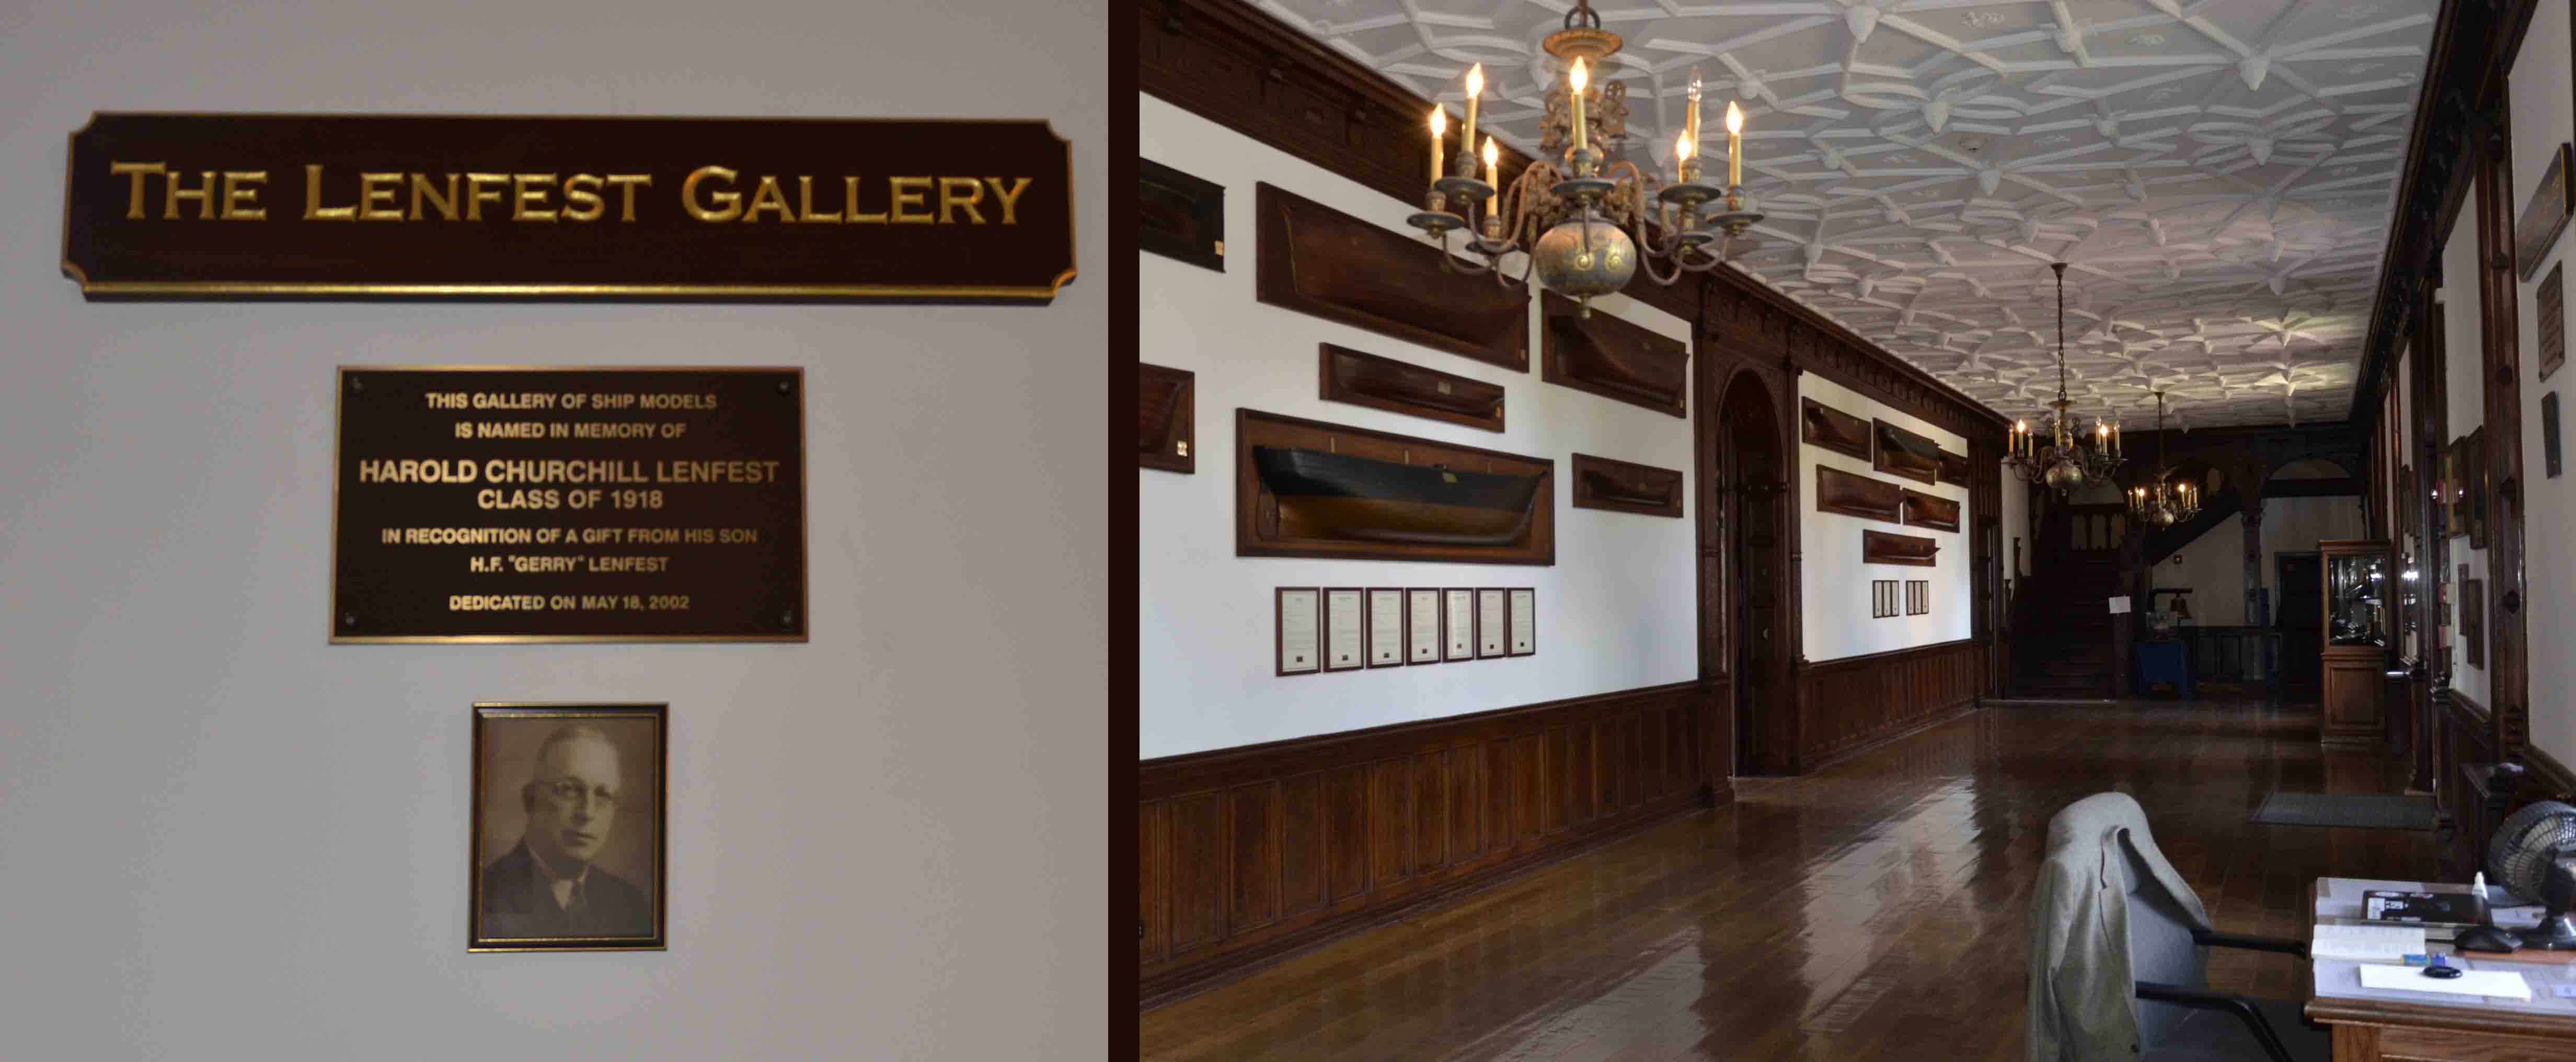 Lenfest Gallery